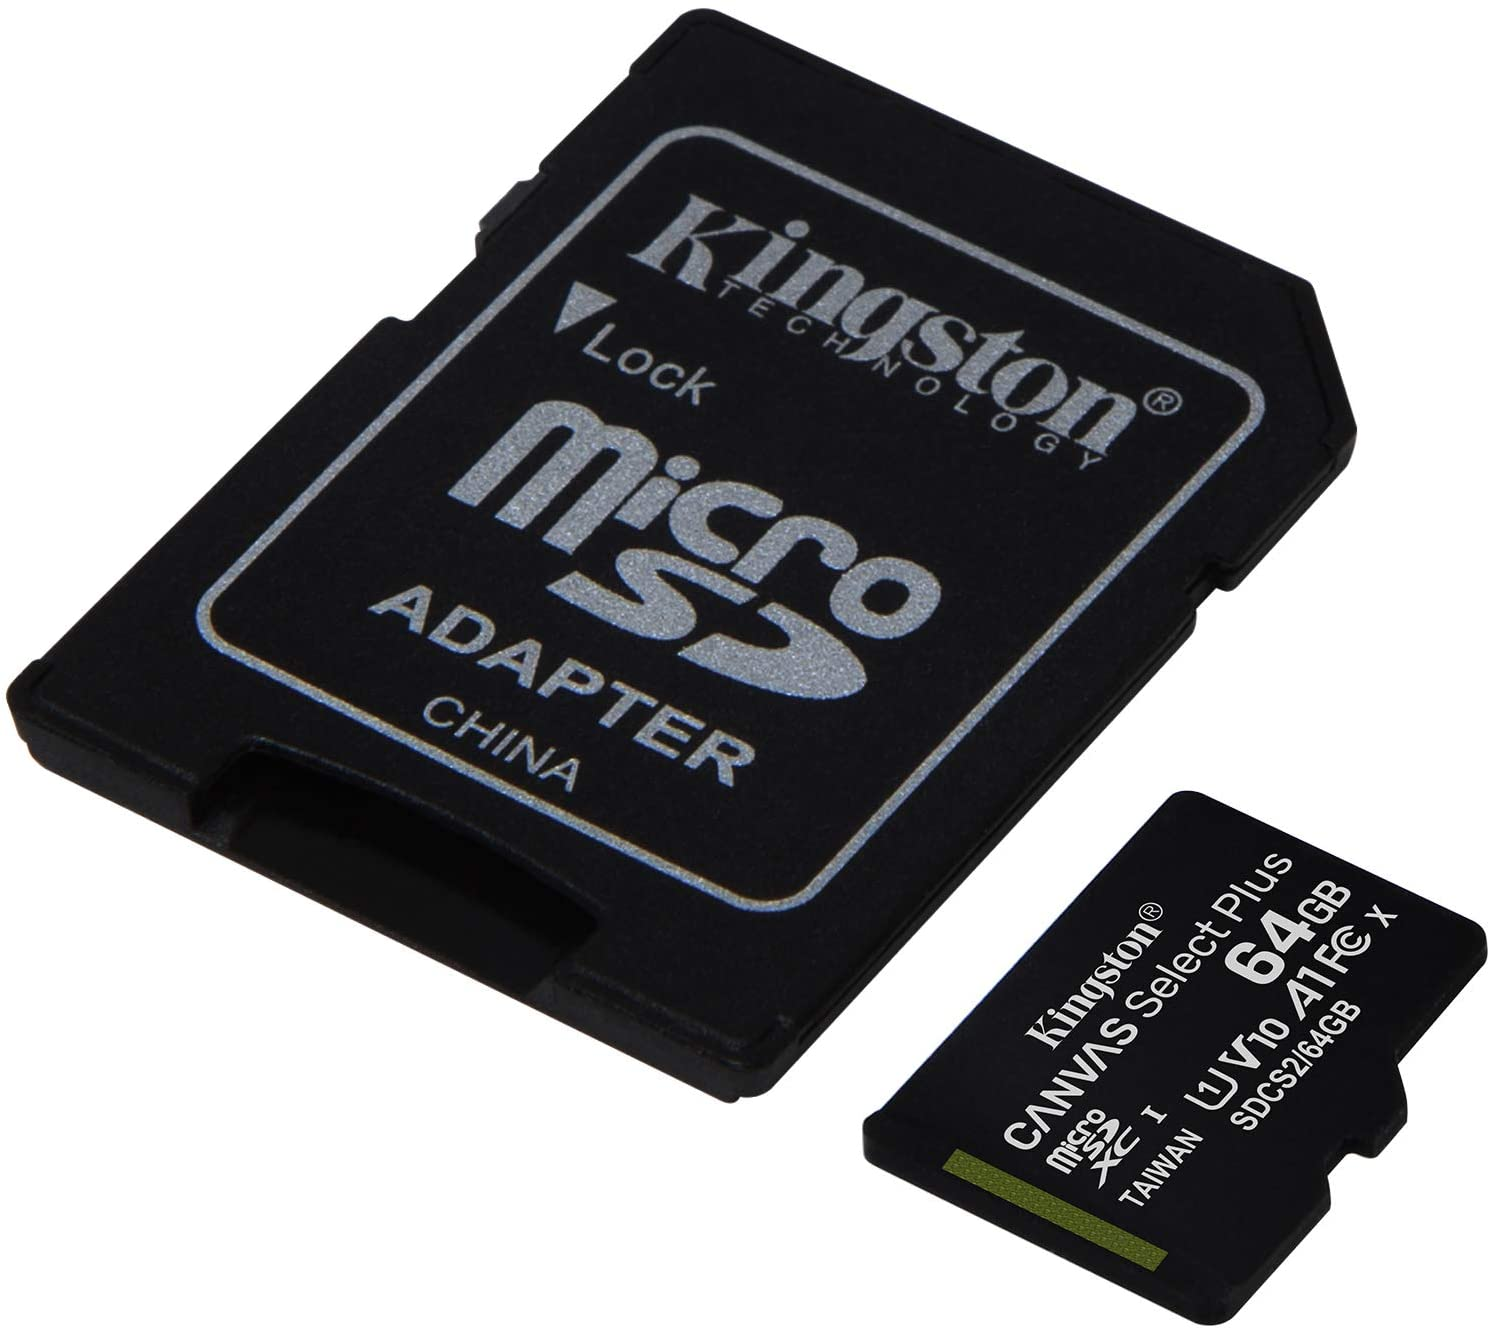 80MBs Works with Kingston Professional Kingston 64GB for Samsung Galaxy Tab S2 9.7 32GB AT/&T MicroSDXC Card Custom Verified by SanFlash.